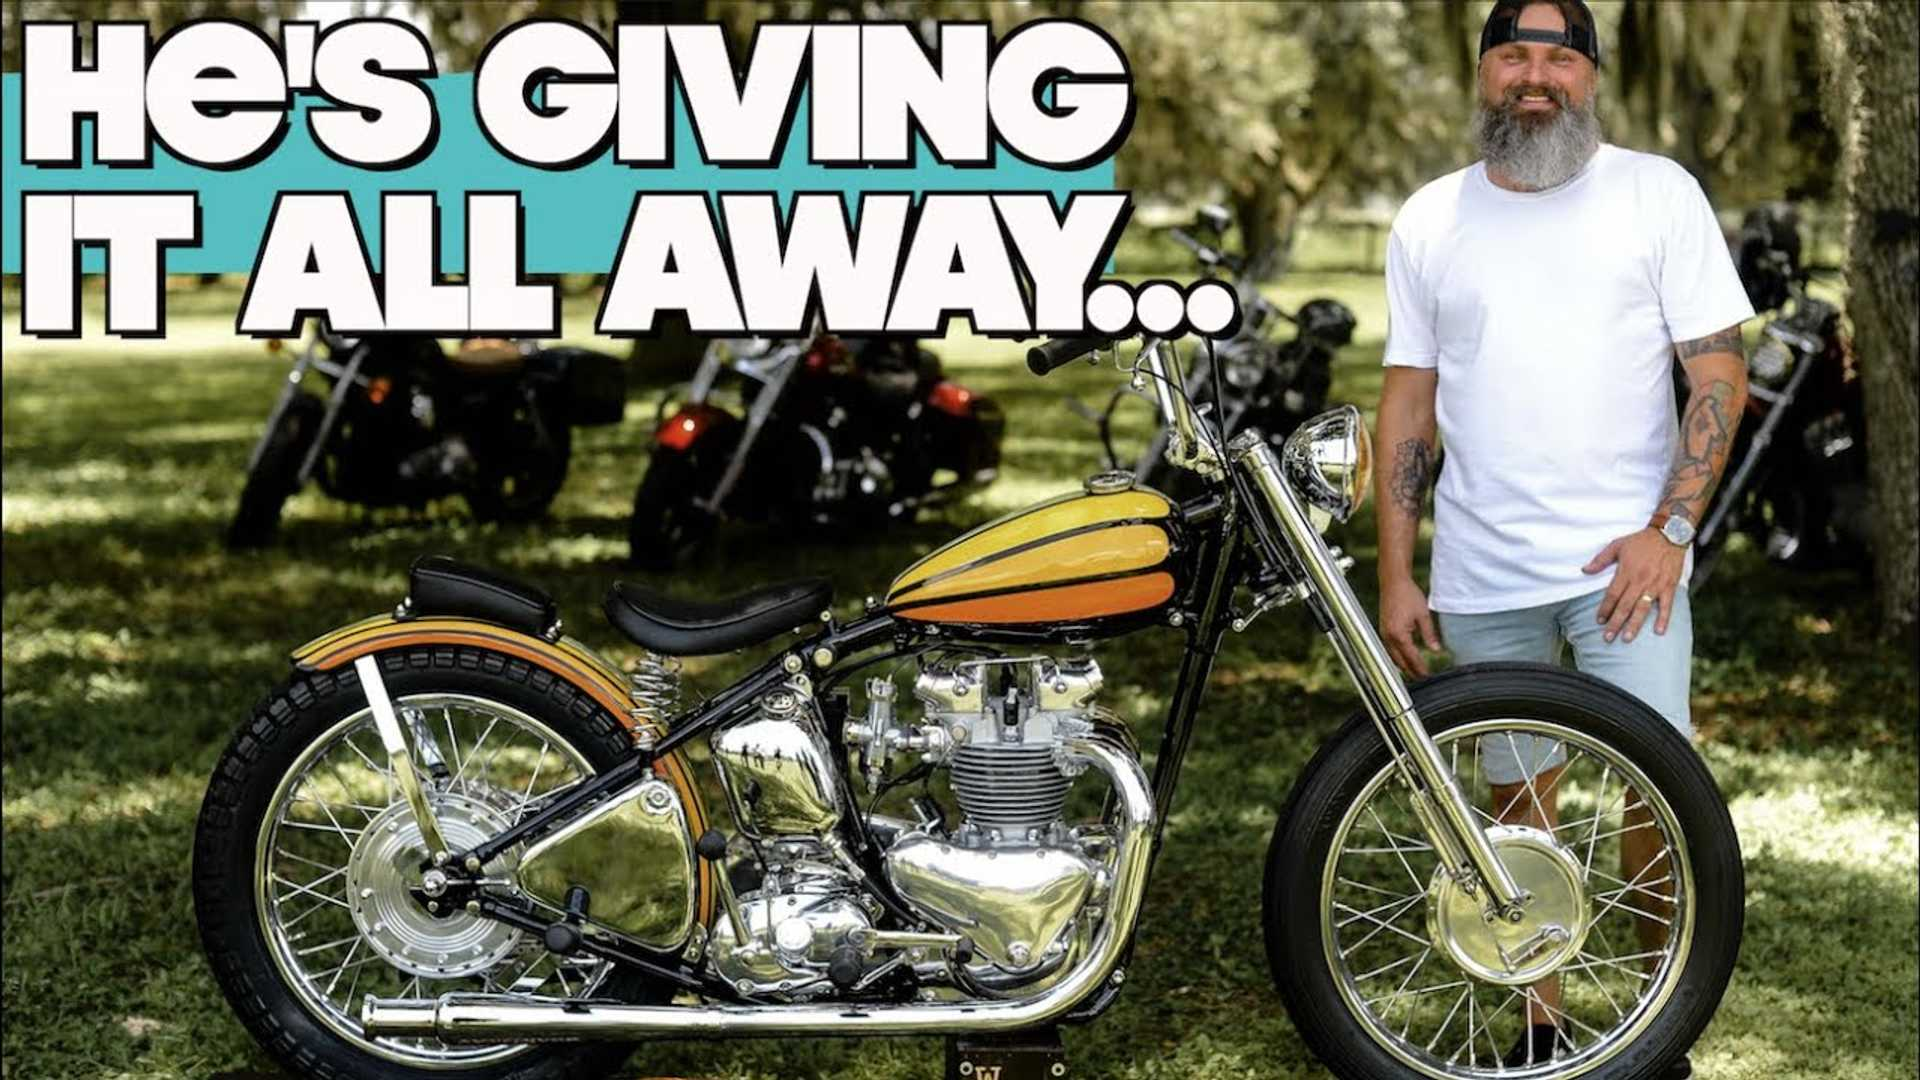 This David Mann Replica Triumph Is Being Raffled For Charity